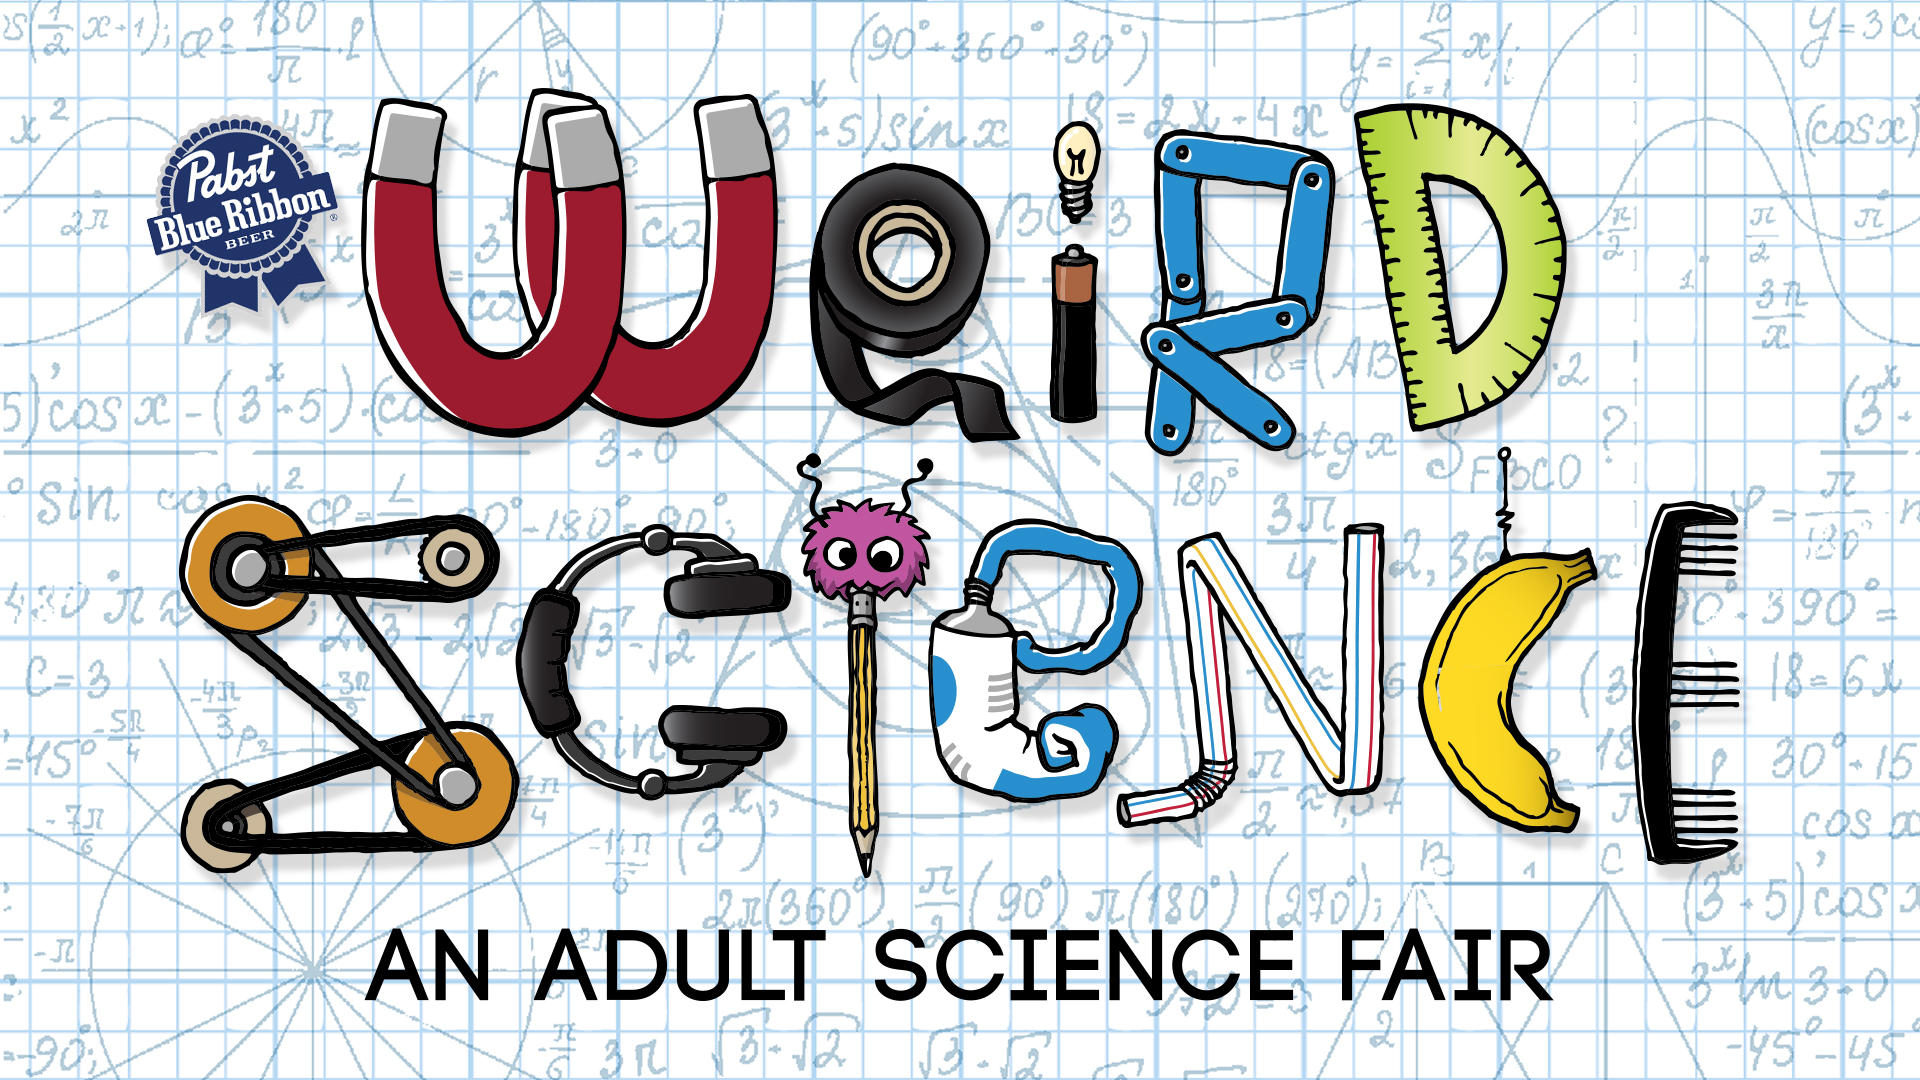 Adult science